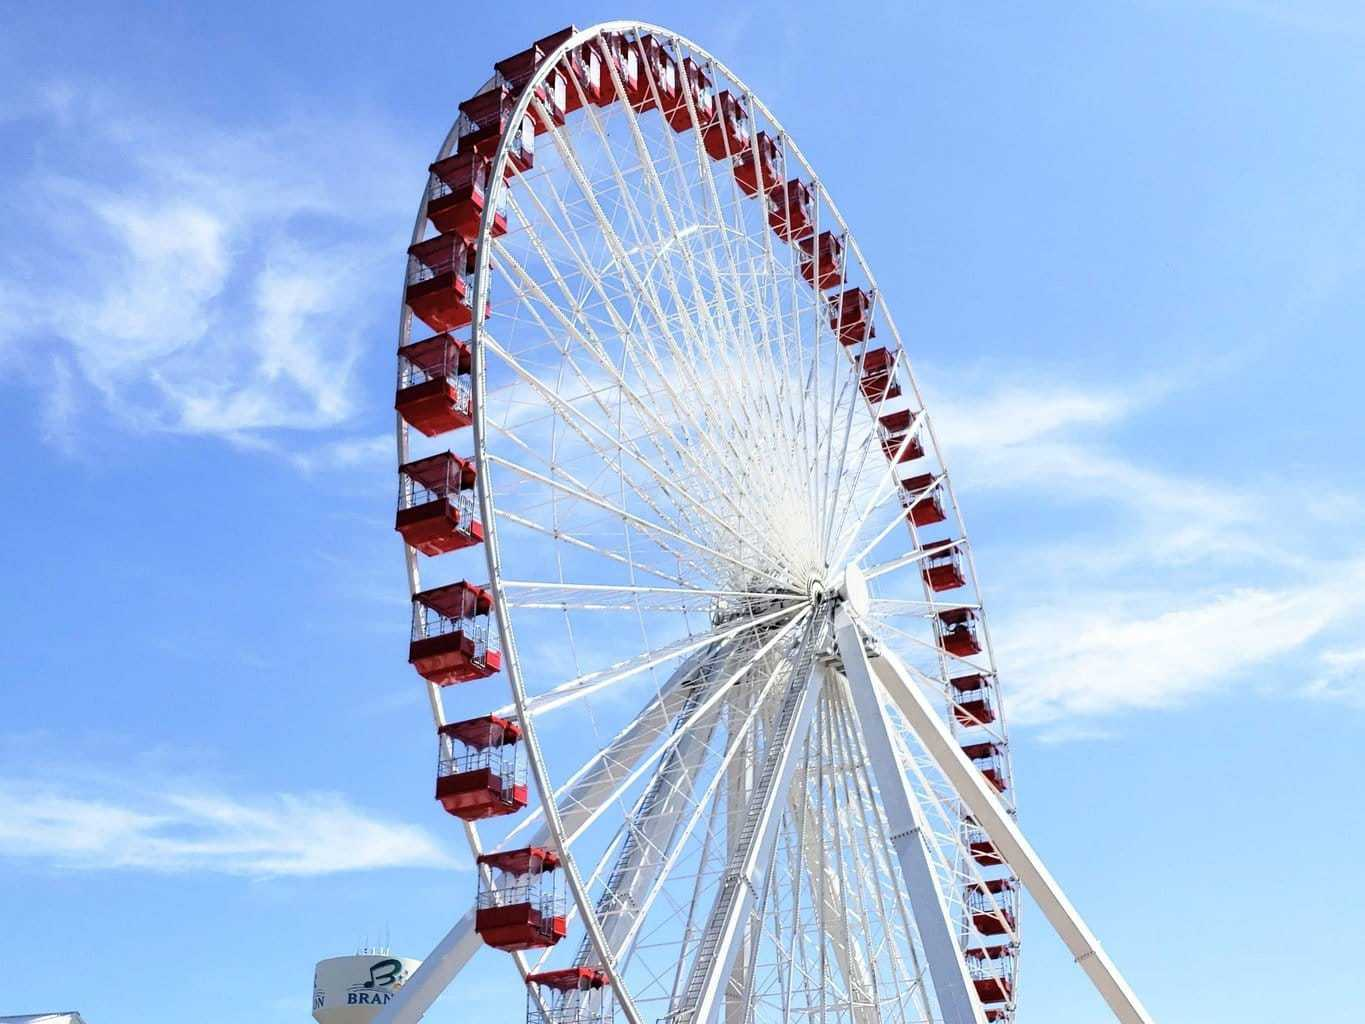 The Track Family Fun Park & Branson Ferris Wheel – Fun for Everyone!